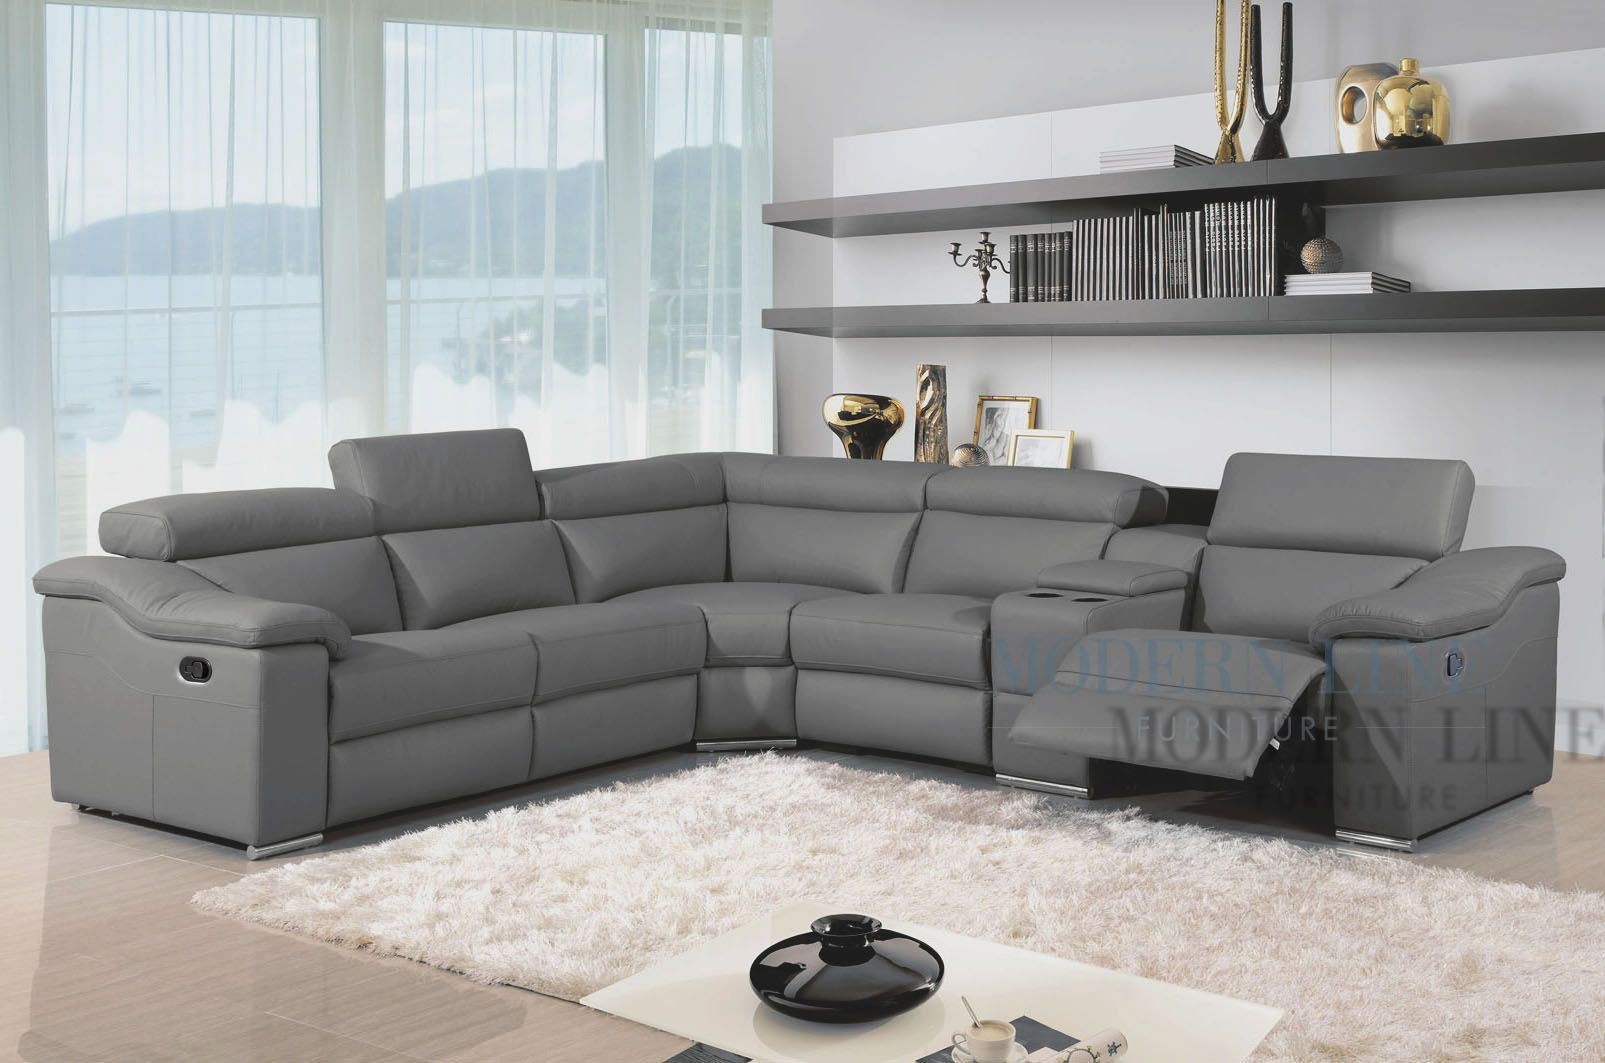 awesome Great Charcoal Grey Sectional Sofa 29 About Remodel Home Design Ideas with Charcoal Grey Sectional · Grey Leather CouchLeather Reclining ... : reclining leather sectional - islam-shia.org